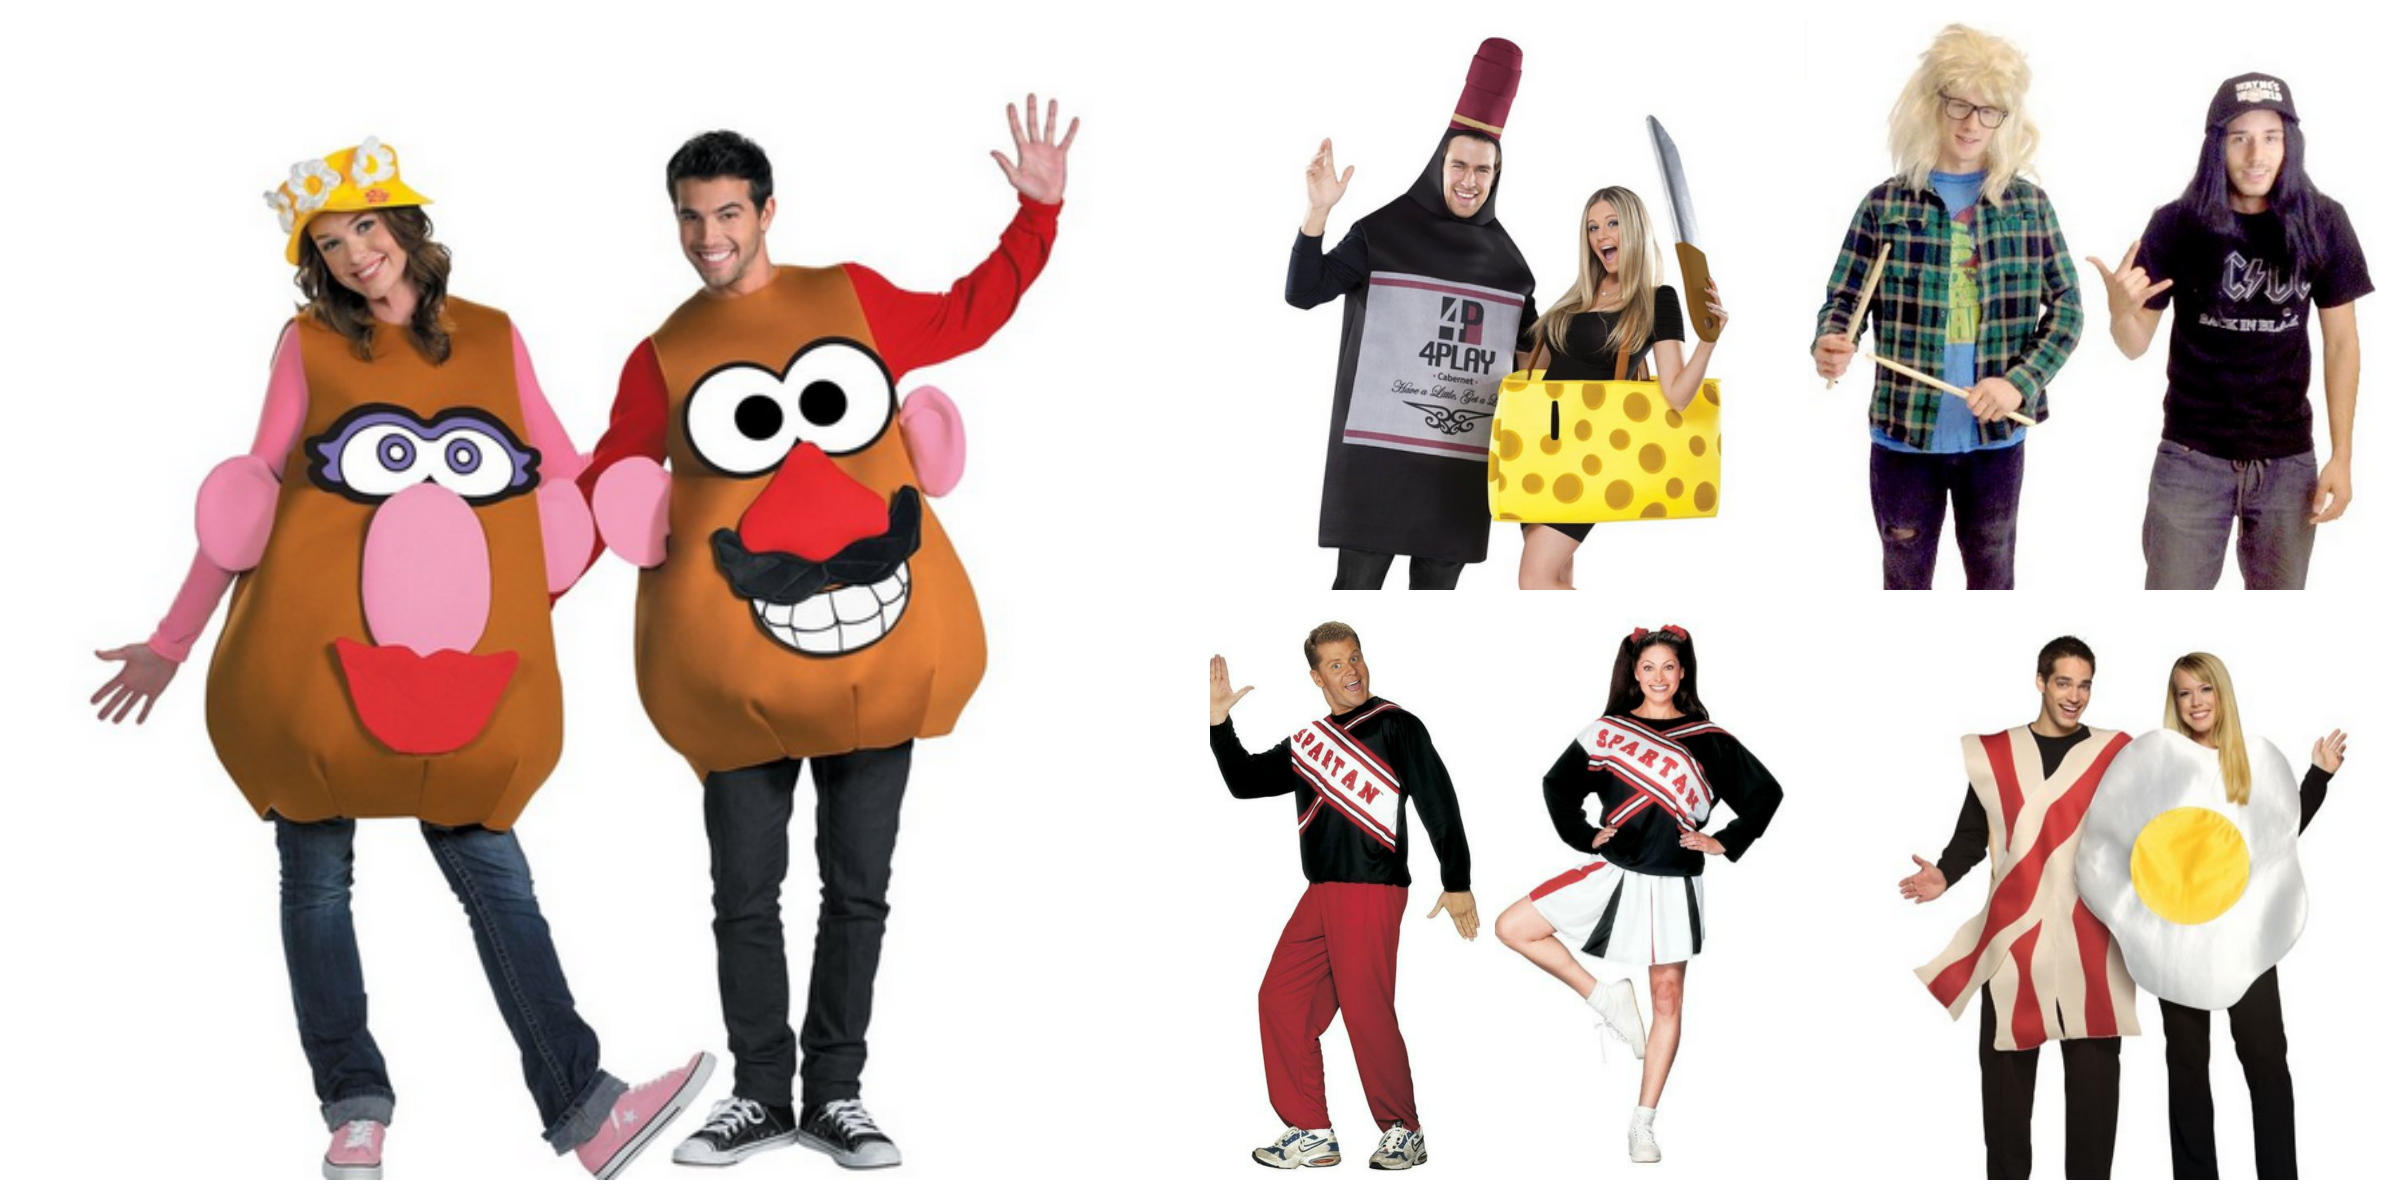 Shop Party City for cute toddler Halloween costumes at fabulous prices. Find all styles of toddler costumes for boys and girls.